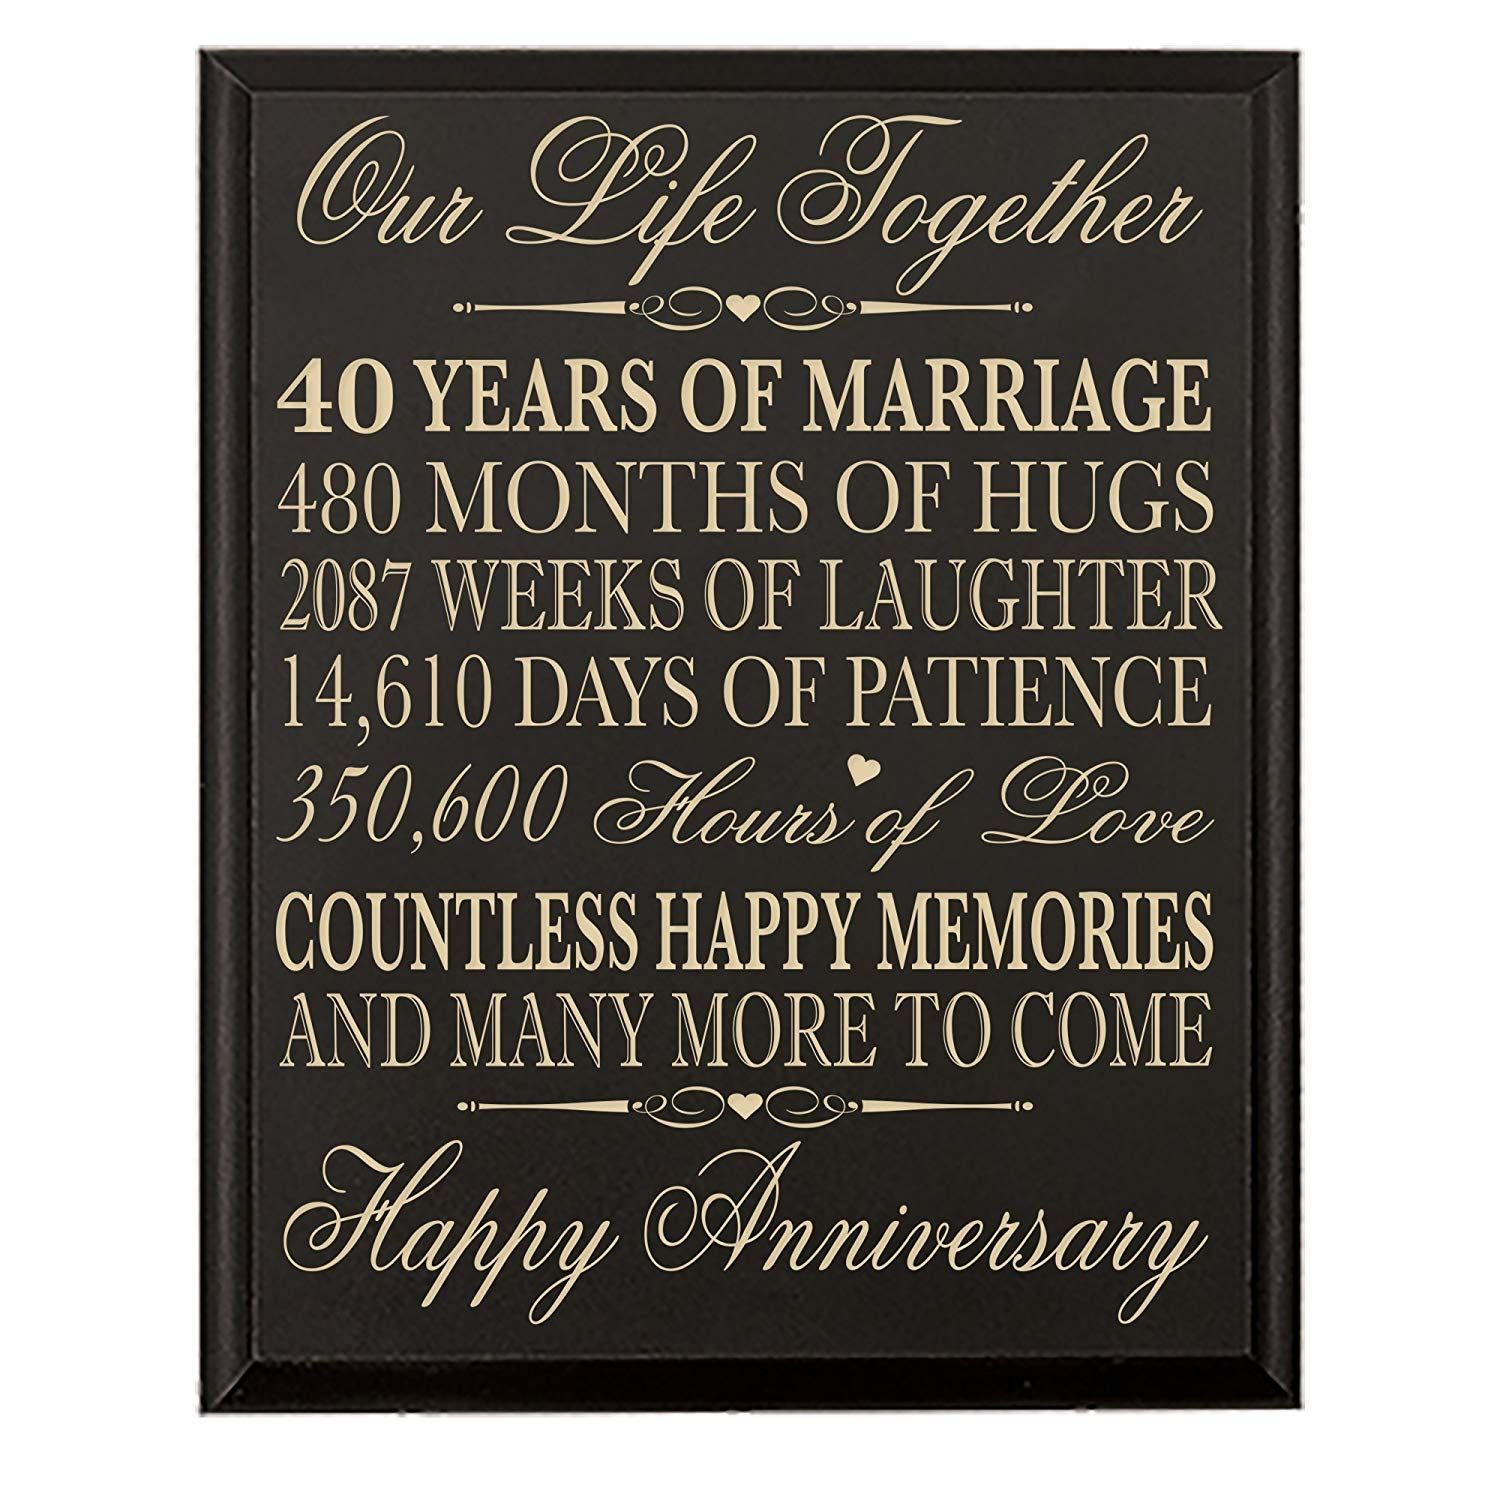 40th wedding anniversary wall plaque gifts